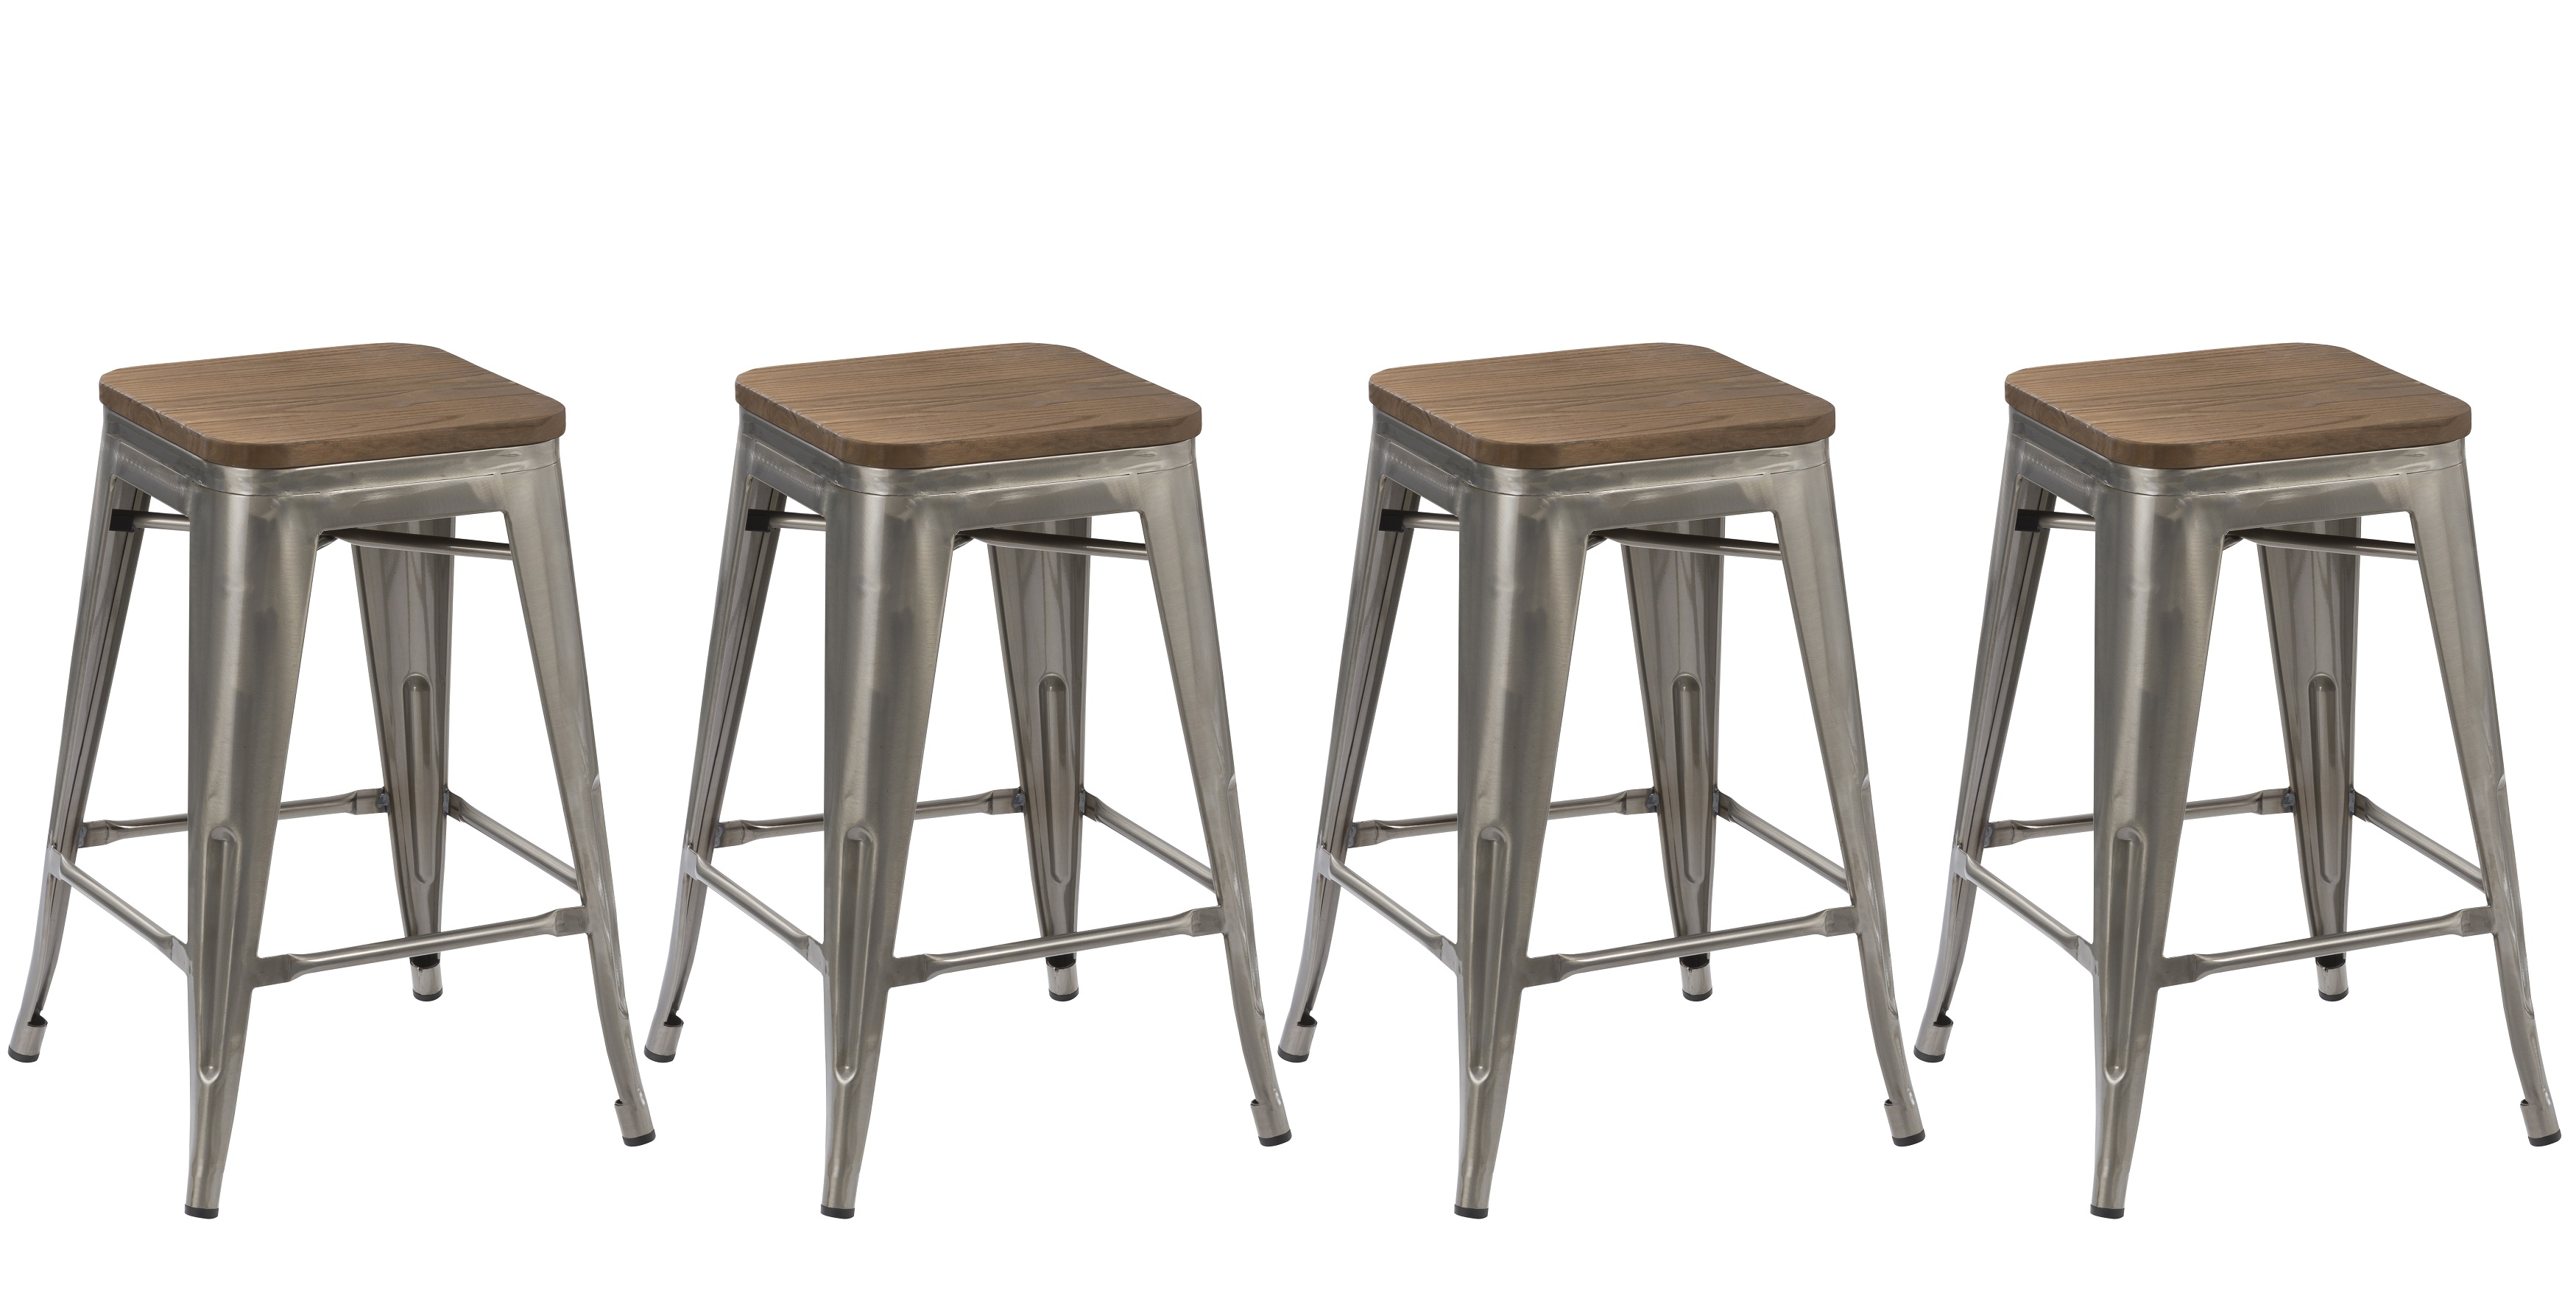 Tabourets Walmart Btexpert 24 Inch Industrial Stackable Metal Vintage Antique Style Clear Brush Distressed Counter Bar Stool Modern Wood Top Seat Set Of 4 Barstool